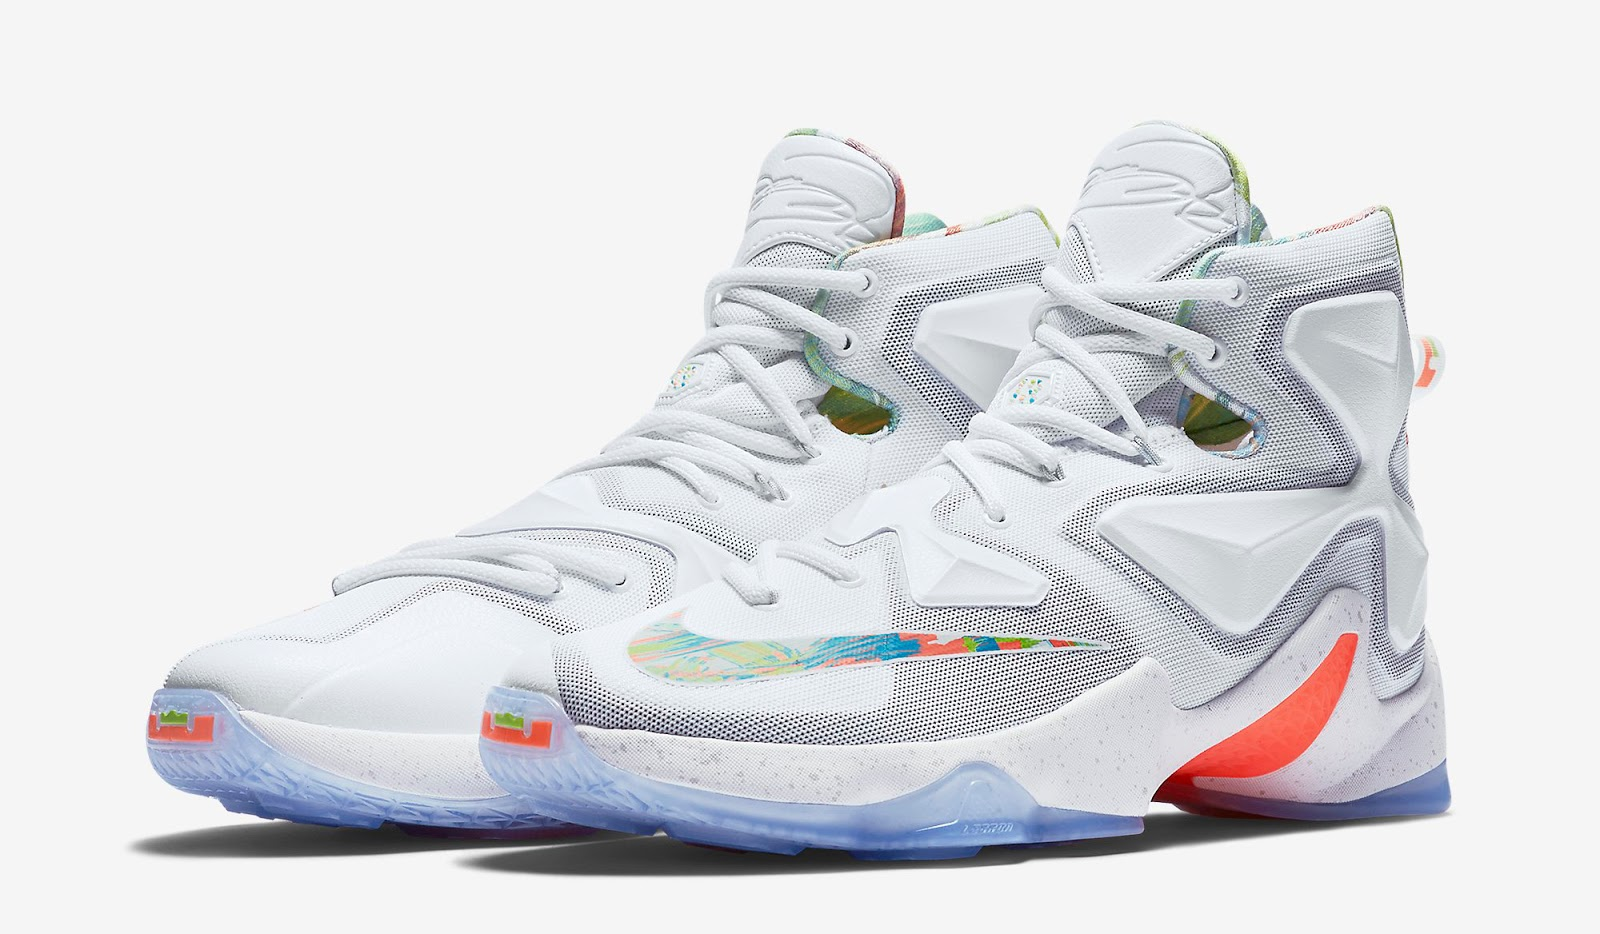 new product 7341a 8f345 Nike LeBron 13